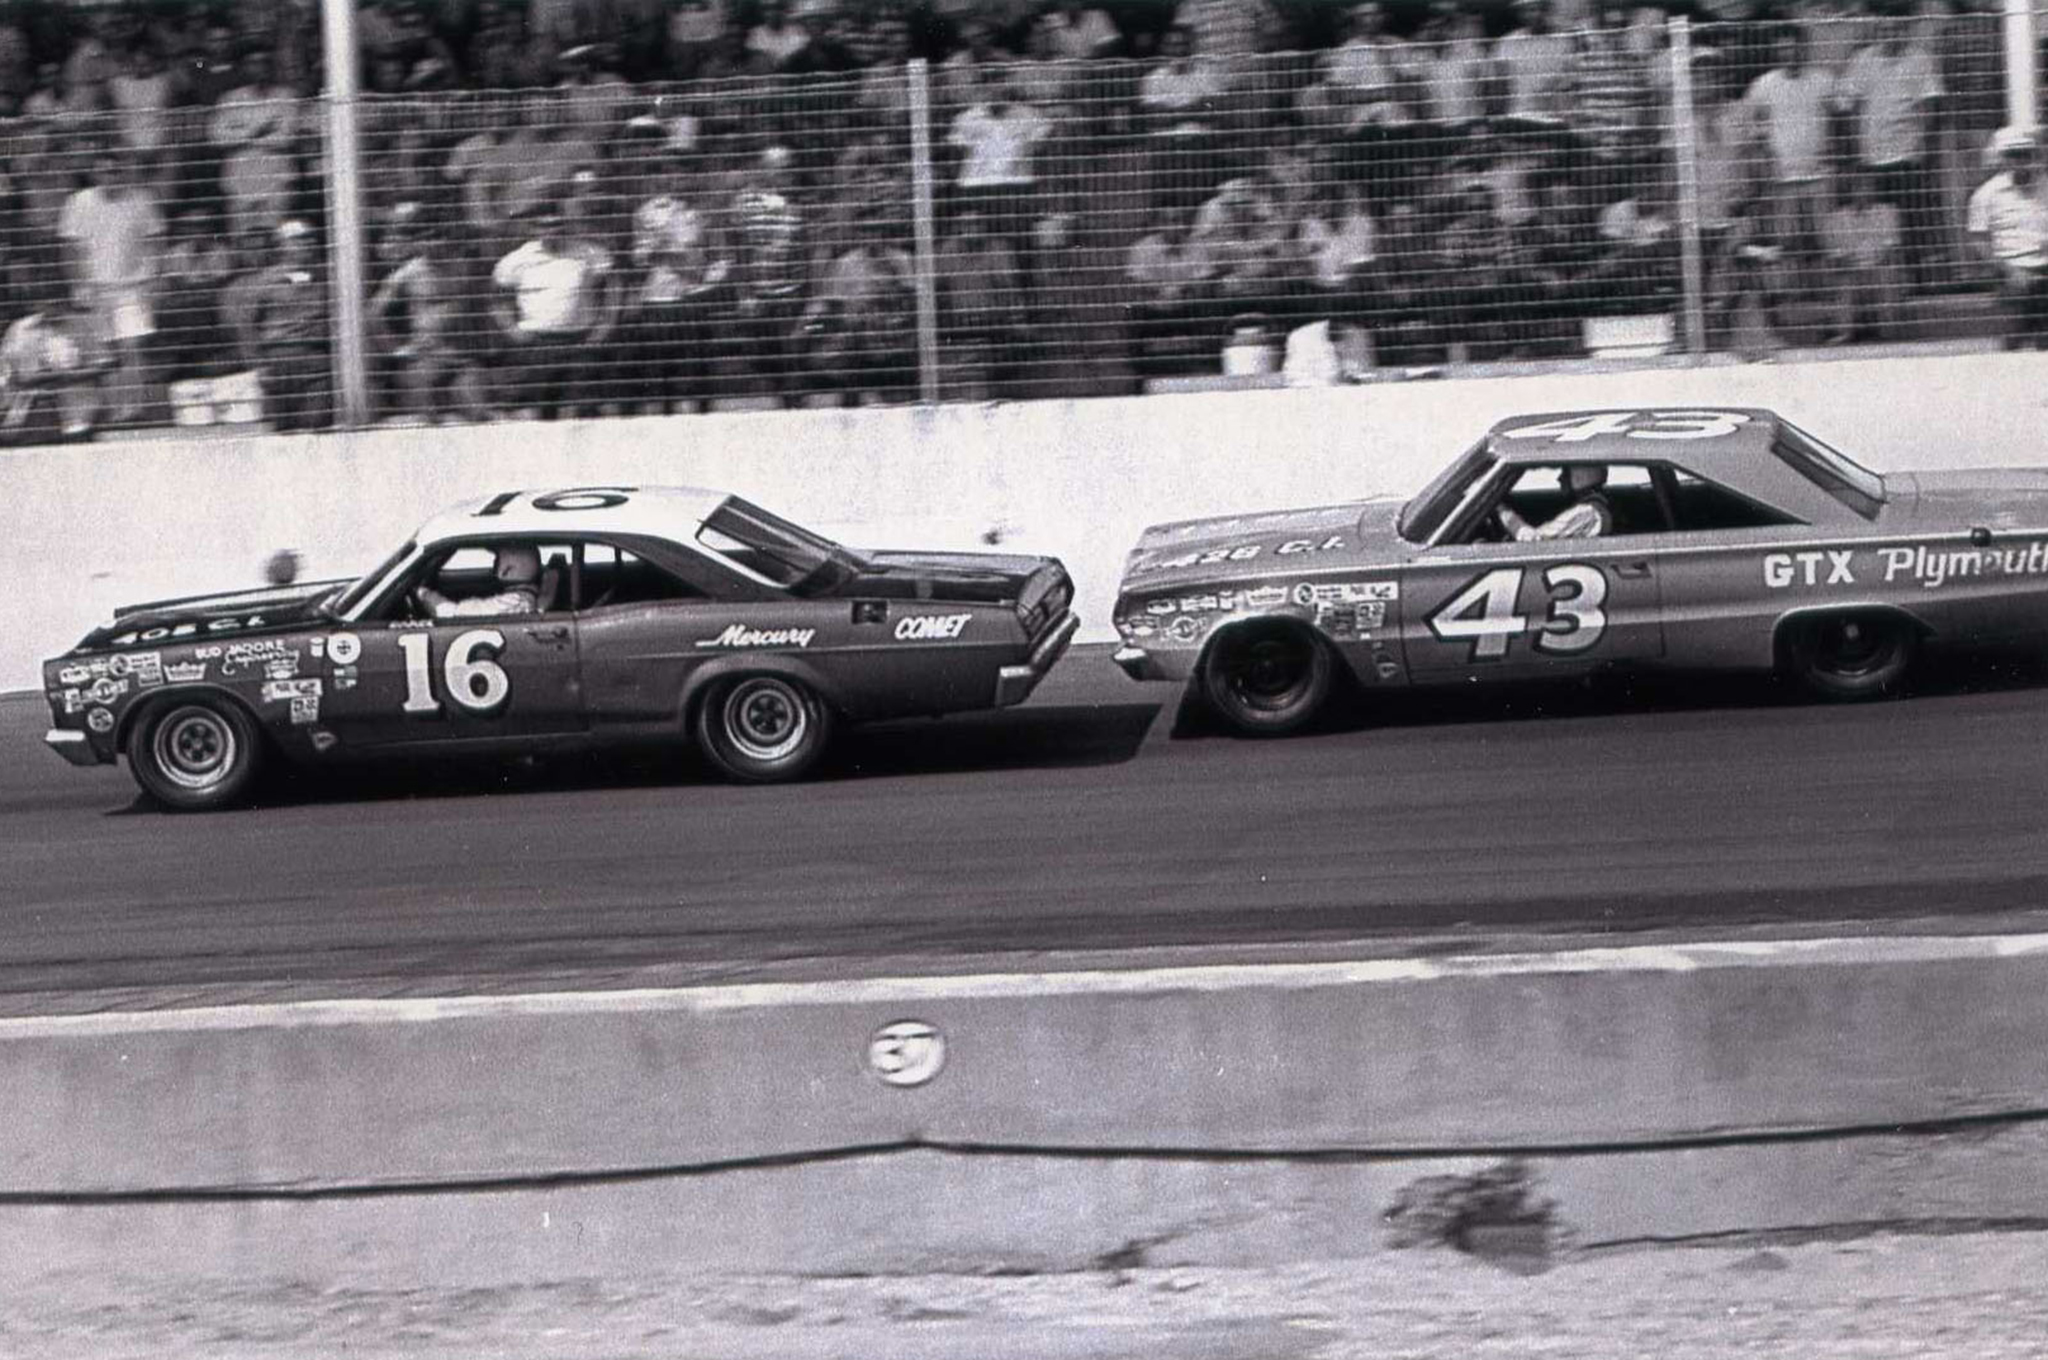 That's the King Richard Petty tailing Darel at Darlington in 1966.